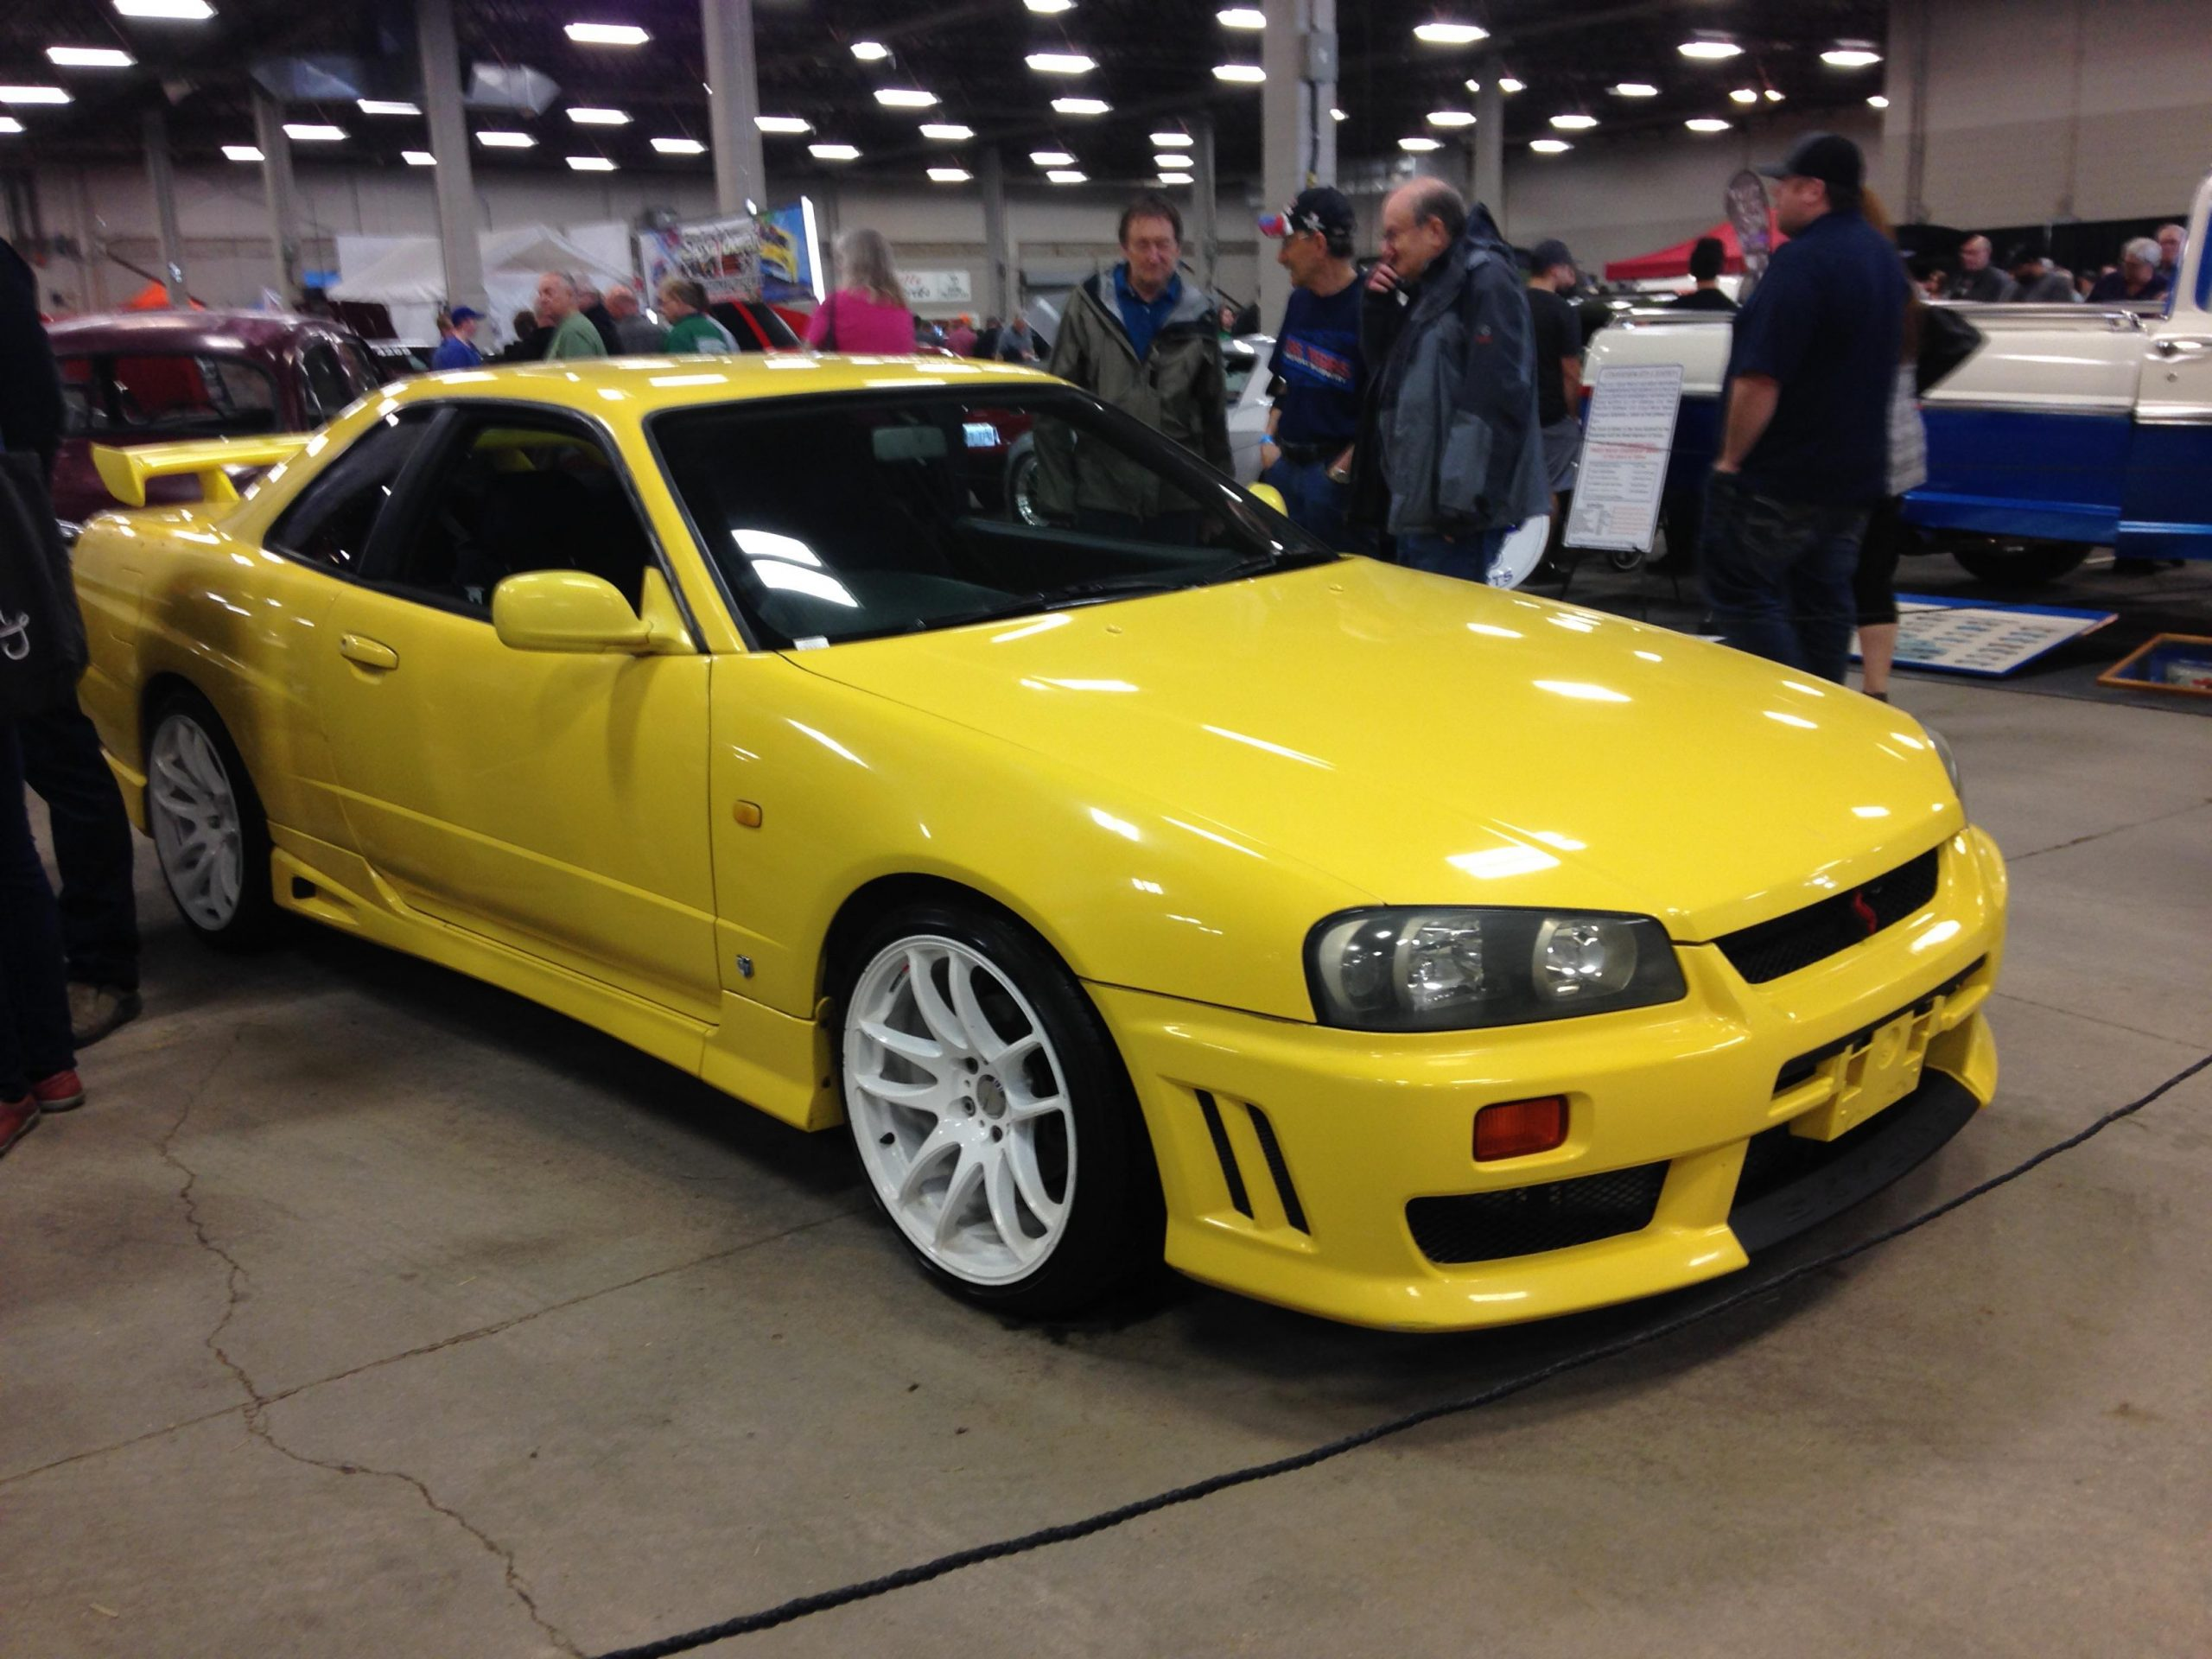 Skyline R34 – pic i took at a car show a long while back